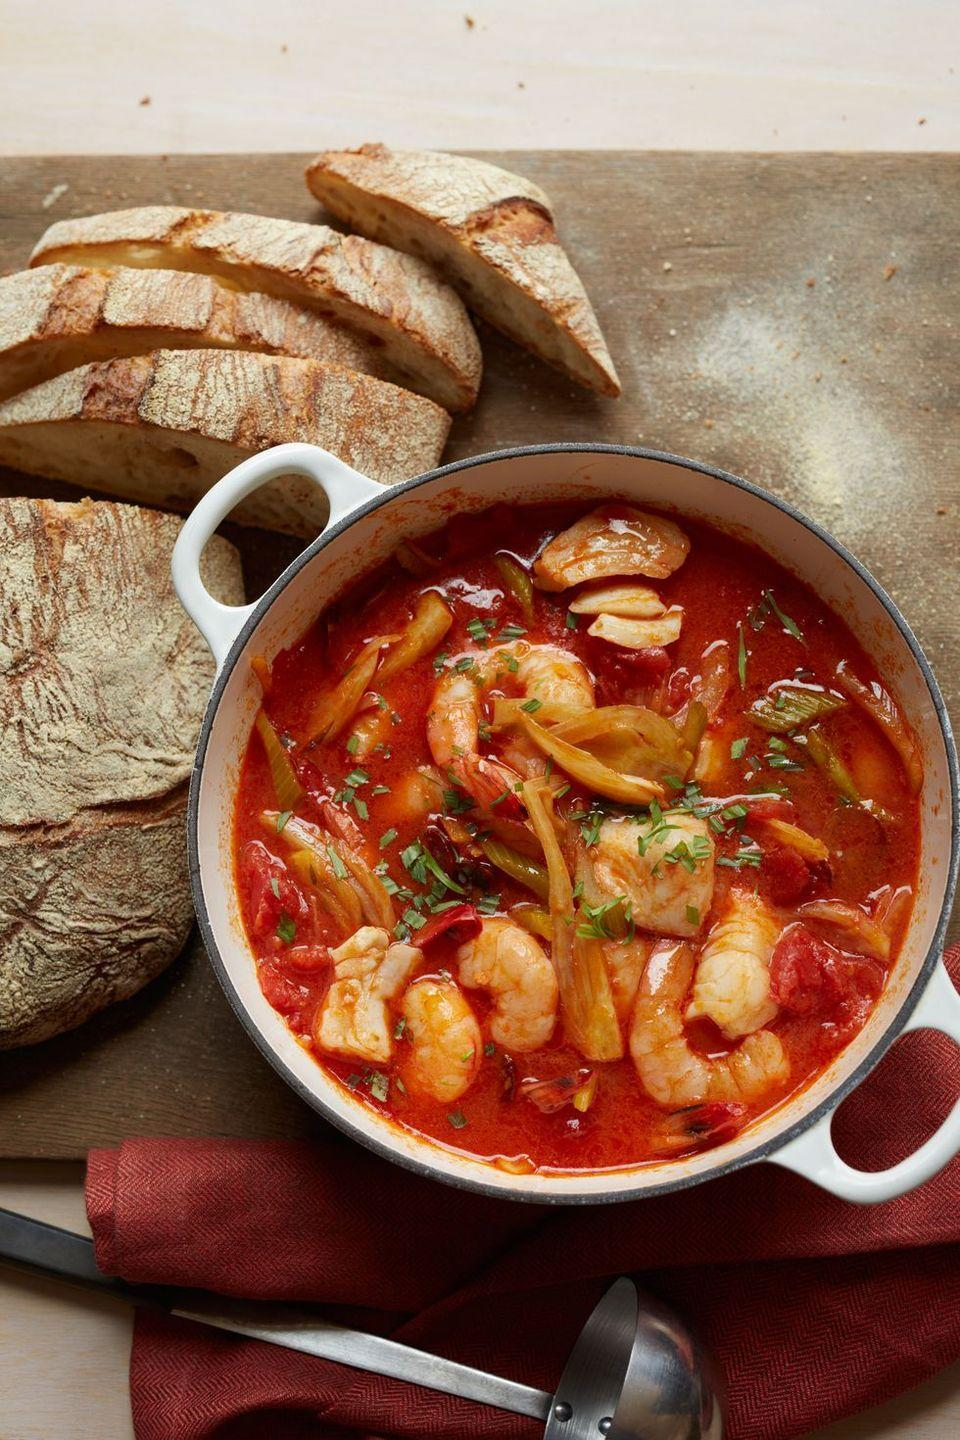 """<p>Nothing complements a tomato-rich broth more than spicy chorizo and sweet, tender seafood.</p><p><em><a href=""""https://www.womansday.com/food-recipes/food-drinks/recipes/a11362/seafood-chorizo-vegetable-stew-recipe-wdy1013/"""" rel=""""nofollow noopener"""" target=""""_blank"""" data-ylk=""""slk:Get the Seafood, Chorizo, and Vegetable Stew recipe"""" class=""""link rapid-noclick-resp"""">Get the Seafood, Chorizo, and Vegetable Stew recipe</a>.</em></p><p><strong><strong>What You'll Need: </strong></strong><a href=""""https://www.amazon.com/Cook-Home-Stainless-Stockpot-Saucepot/dp/B012OIVV1C/"""" rel=""""nofollow noopener"""" target=""""_blank"""" data-ylk=""""slk:Large pot"""" class=""""link rapid-noclick-resp"""">Large pot</a> ($36, Amazon)<br></p>"""